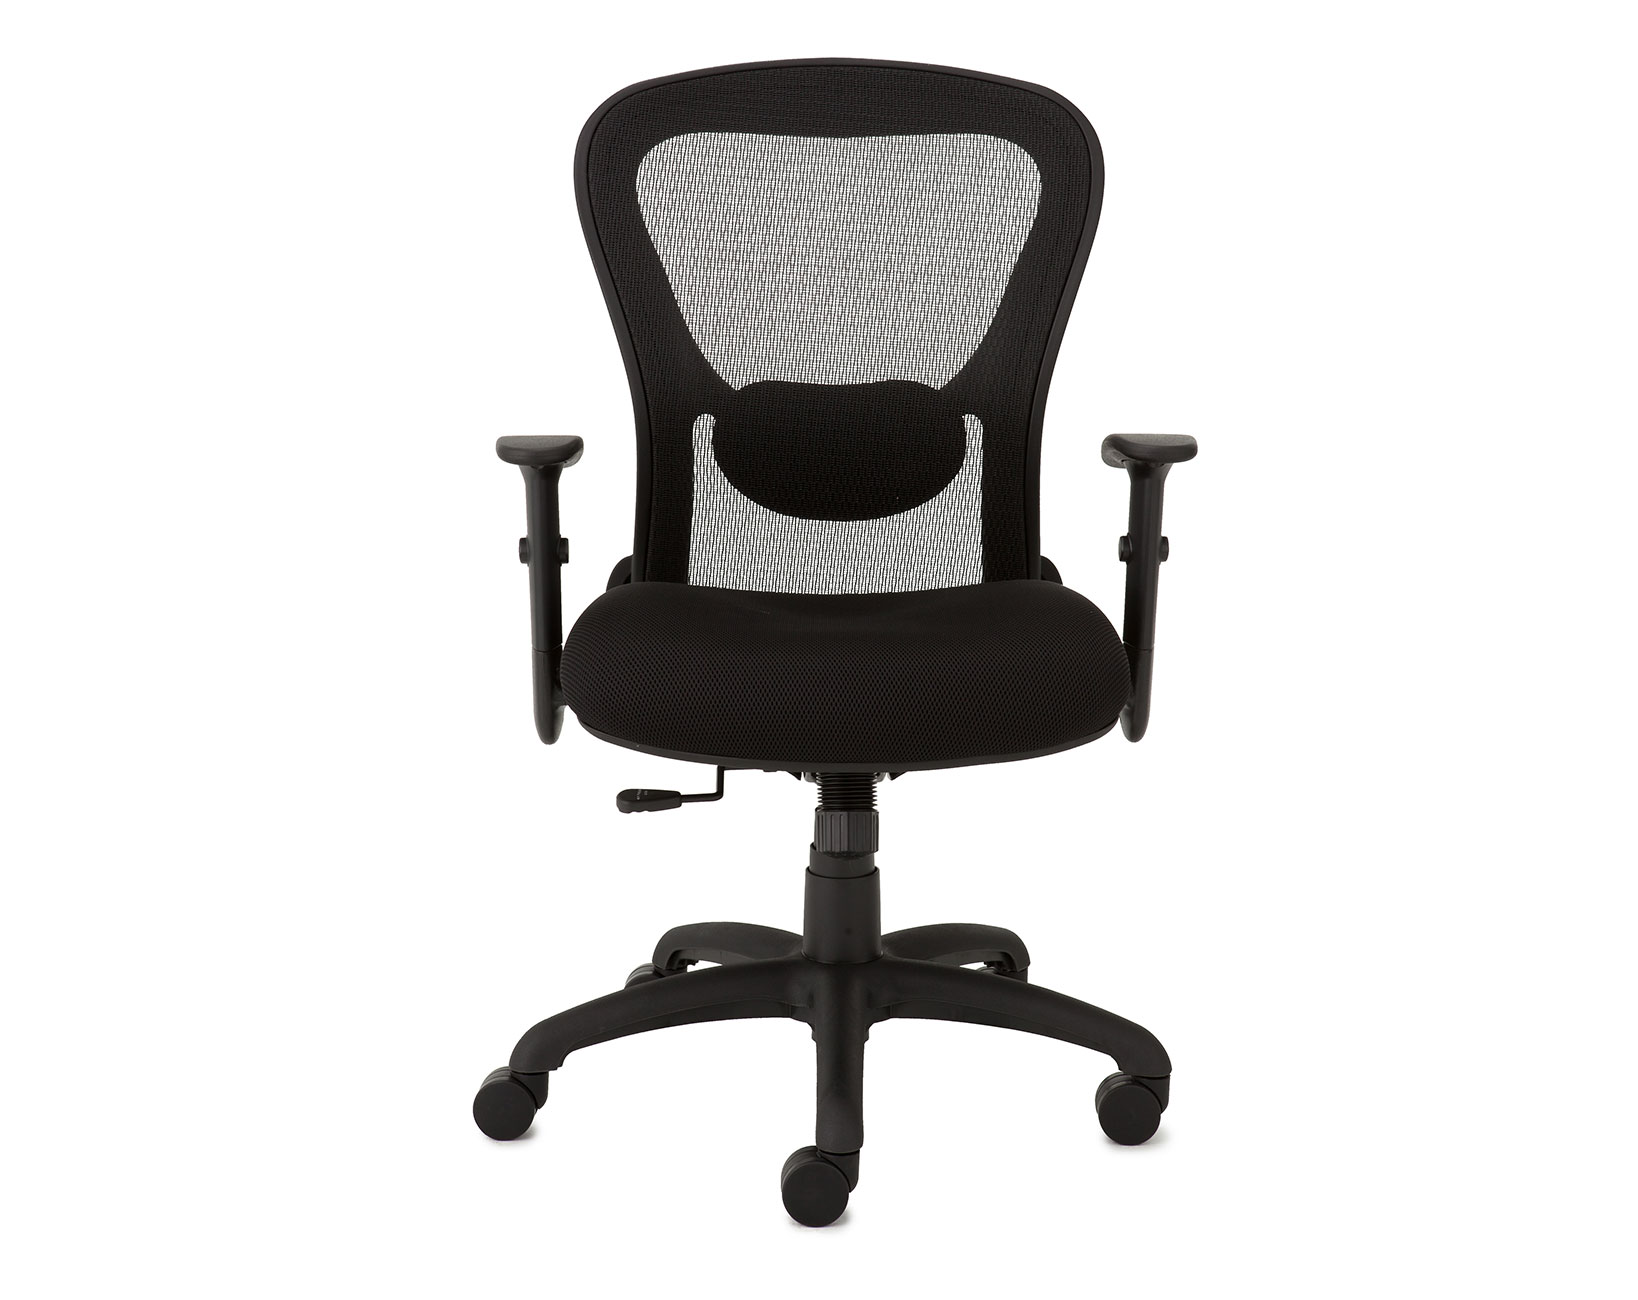 ergonomic chair law colorful folding chairs 9to5 seating strata lite 1545 task office